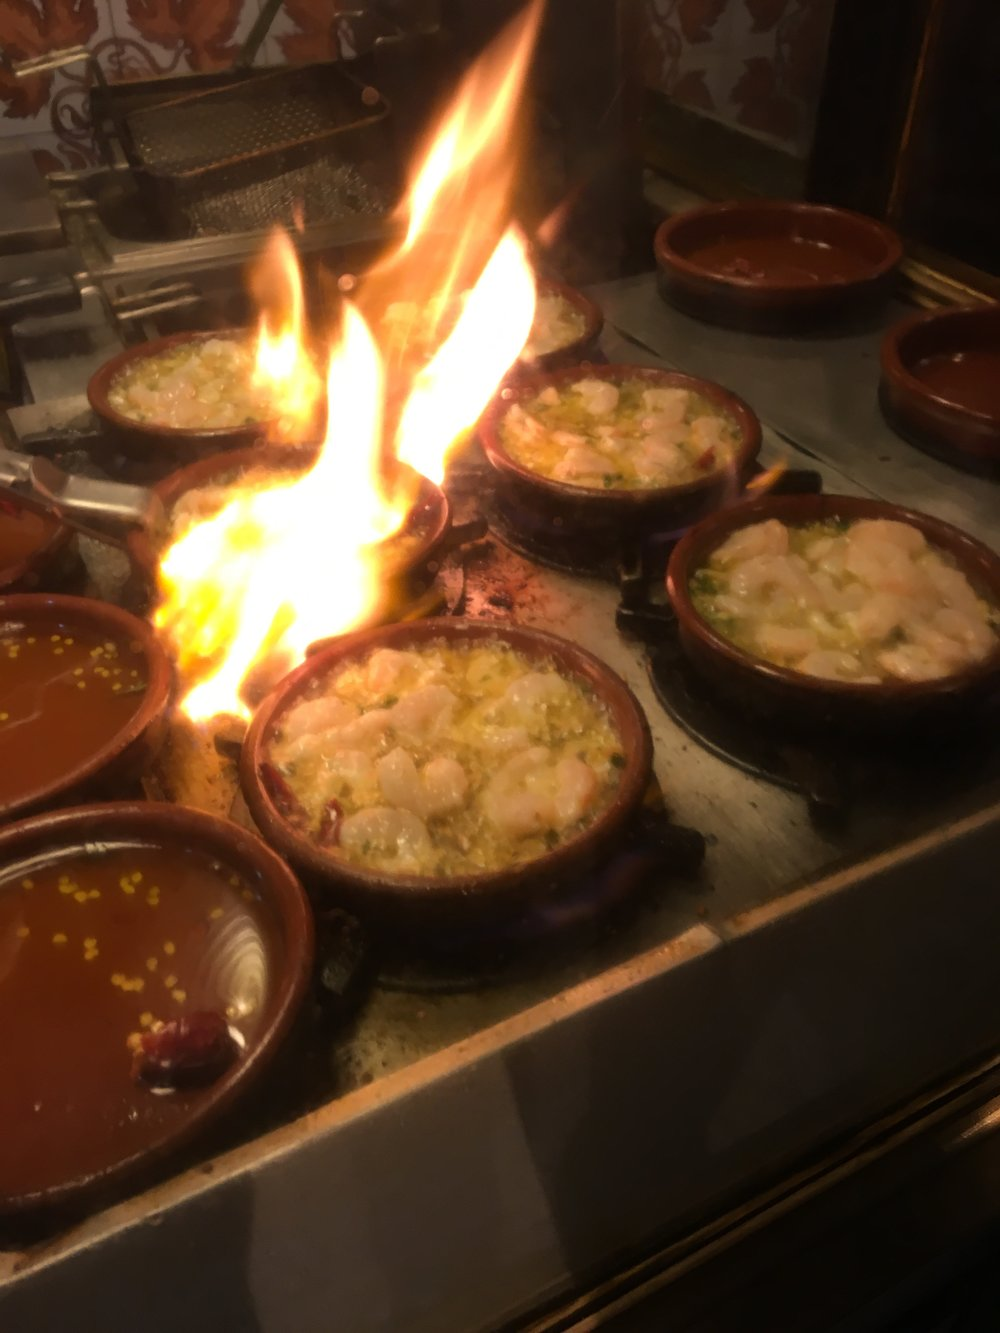 Flaming Gambas ala Ajillo in Spain - 2016